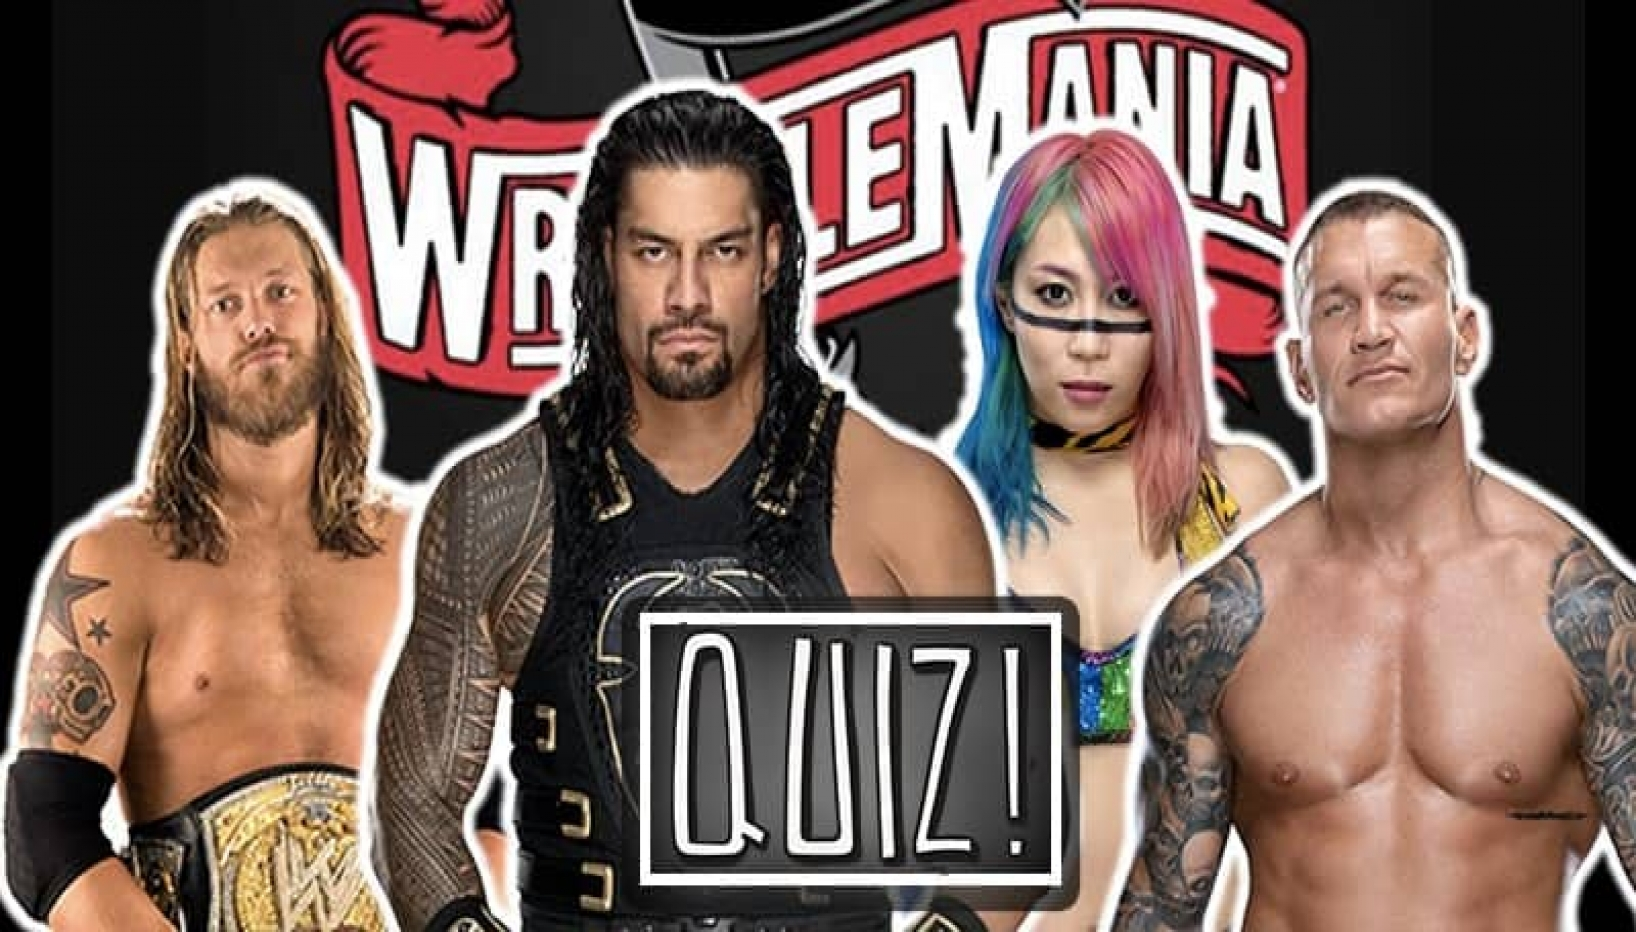 QUIZ: How Many Iconic Wrestlemania Moments Do You Remember?